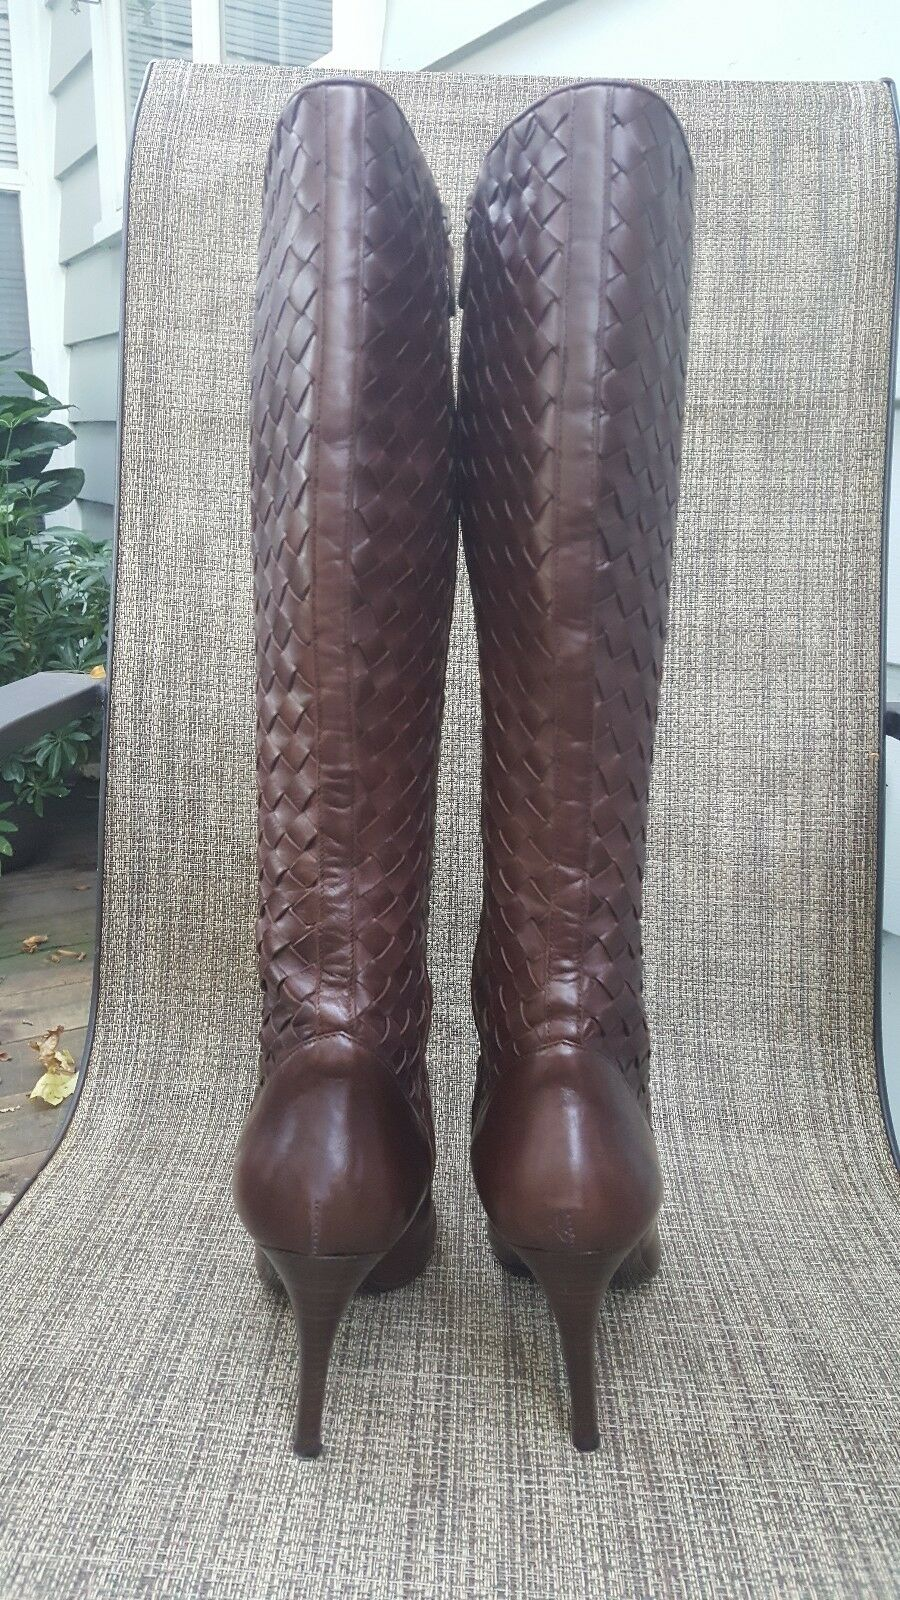 BEAUTIFUL COLE HAAN WOVEN BROWN LEATHER BOOTS SZ 9 NWOB